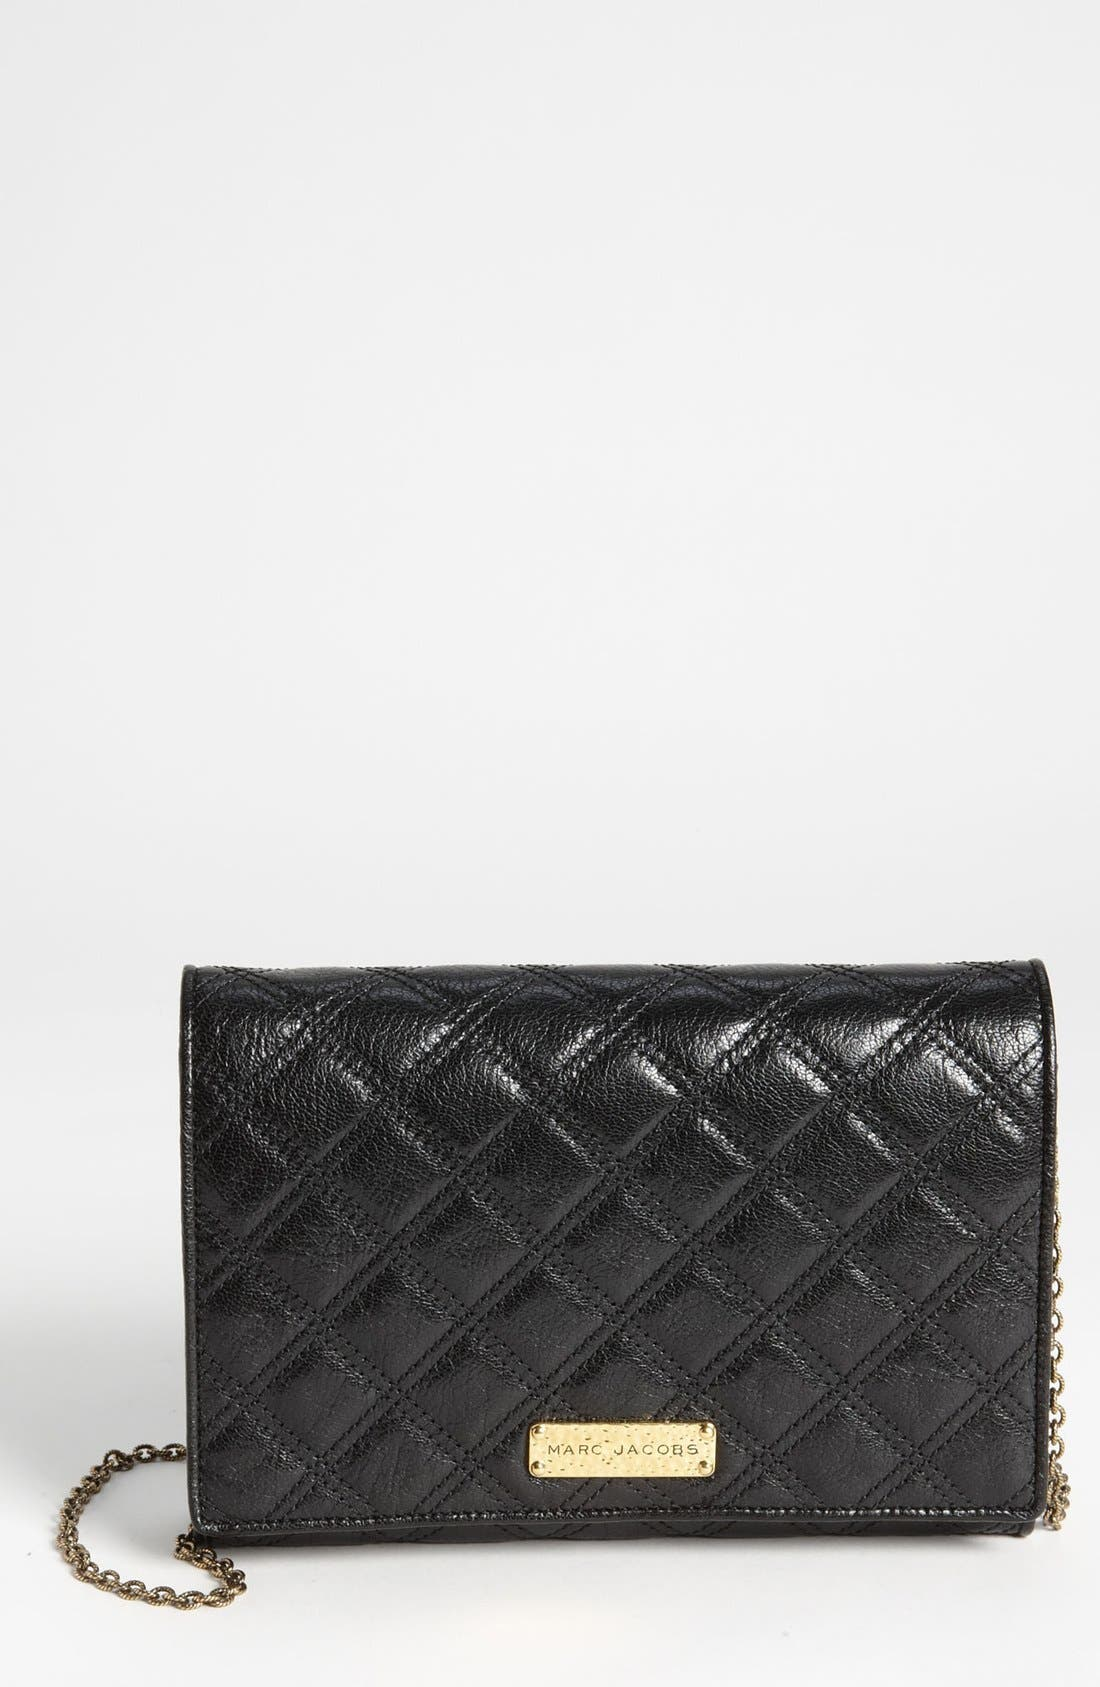 Main Image - MARC JACOBS 'Baroque All In One' Leather Shoulder Bag